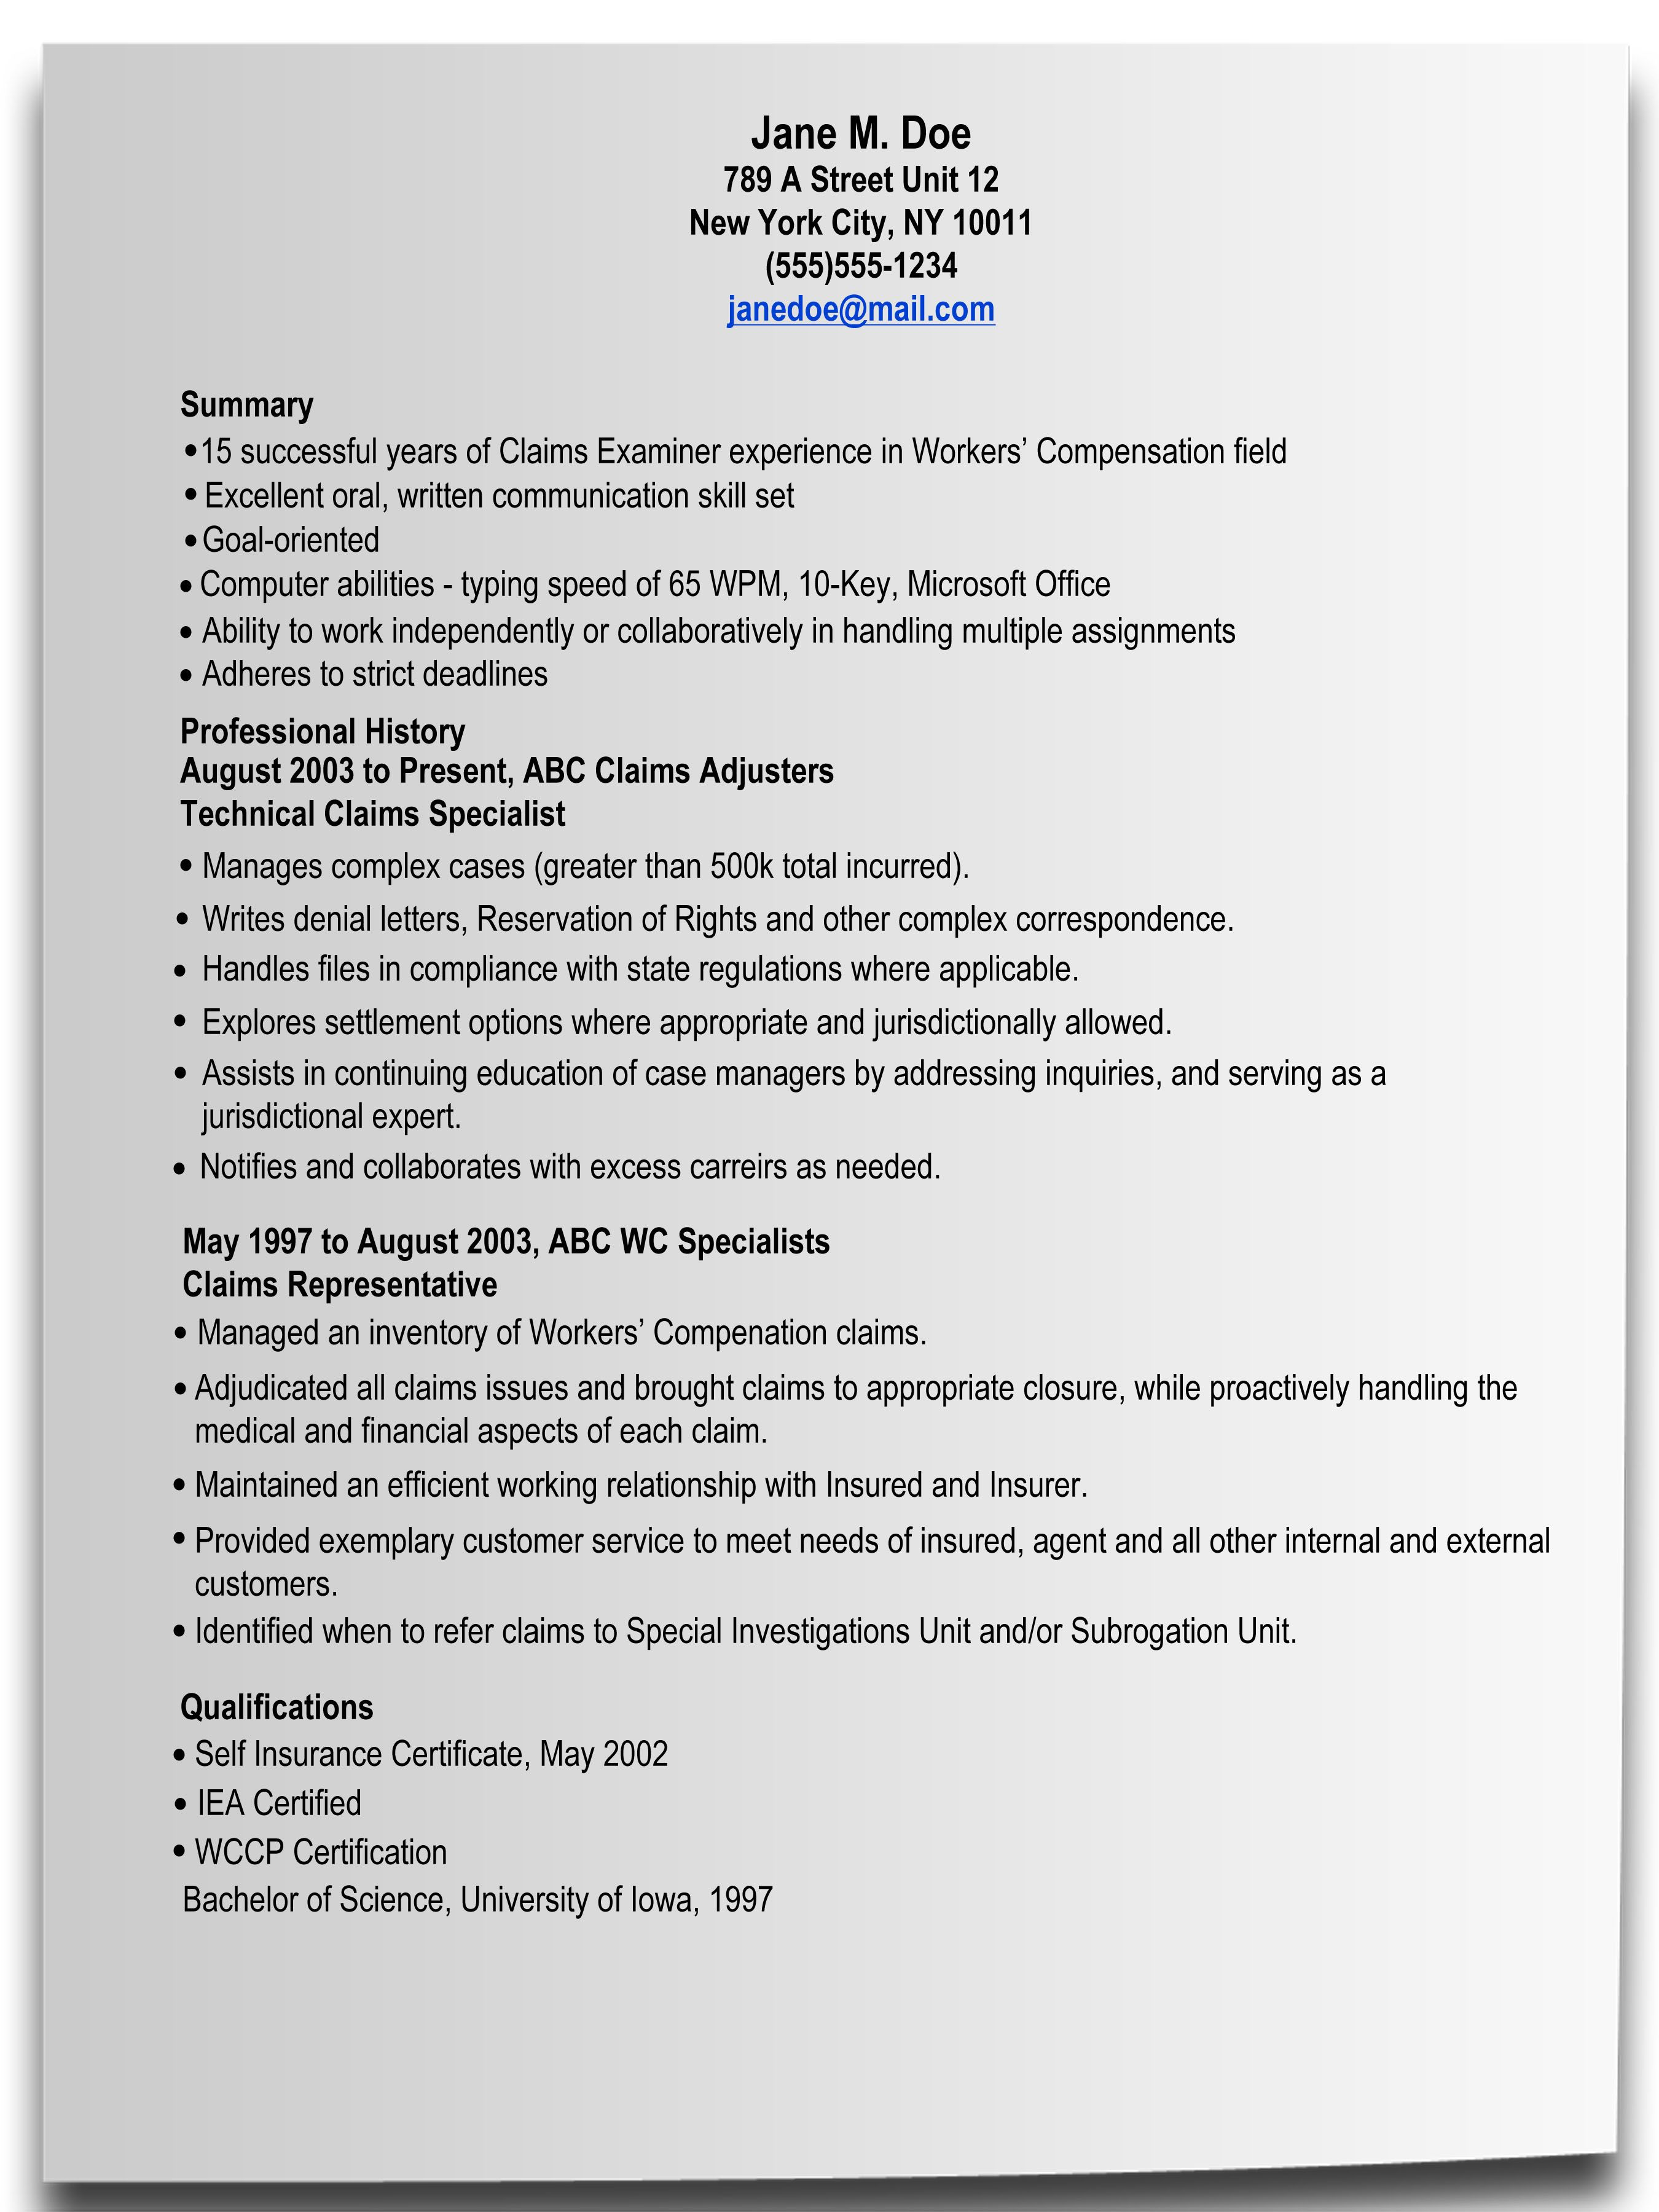 Resume cover letter writing help